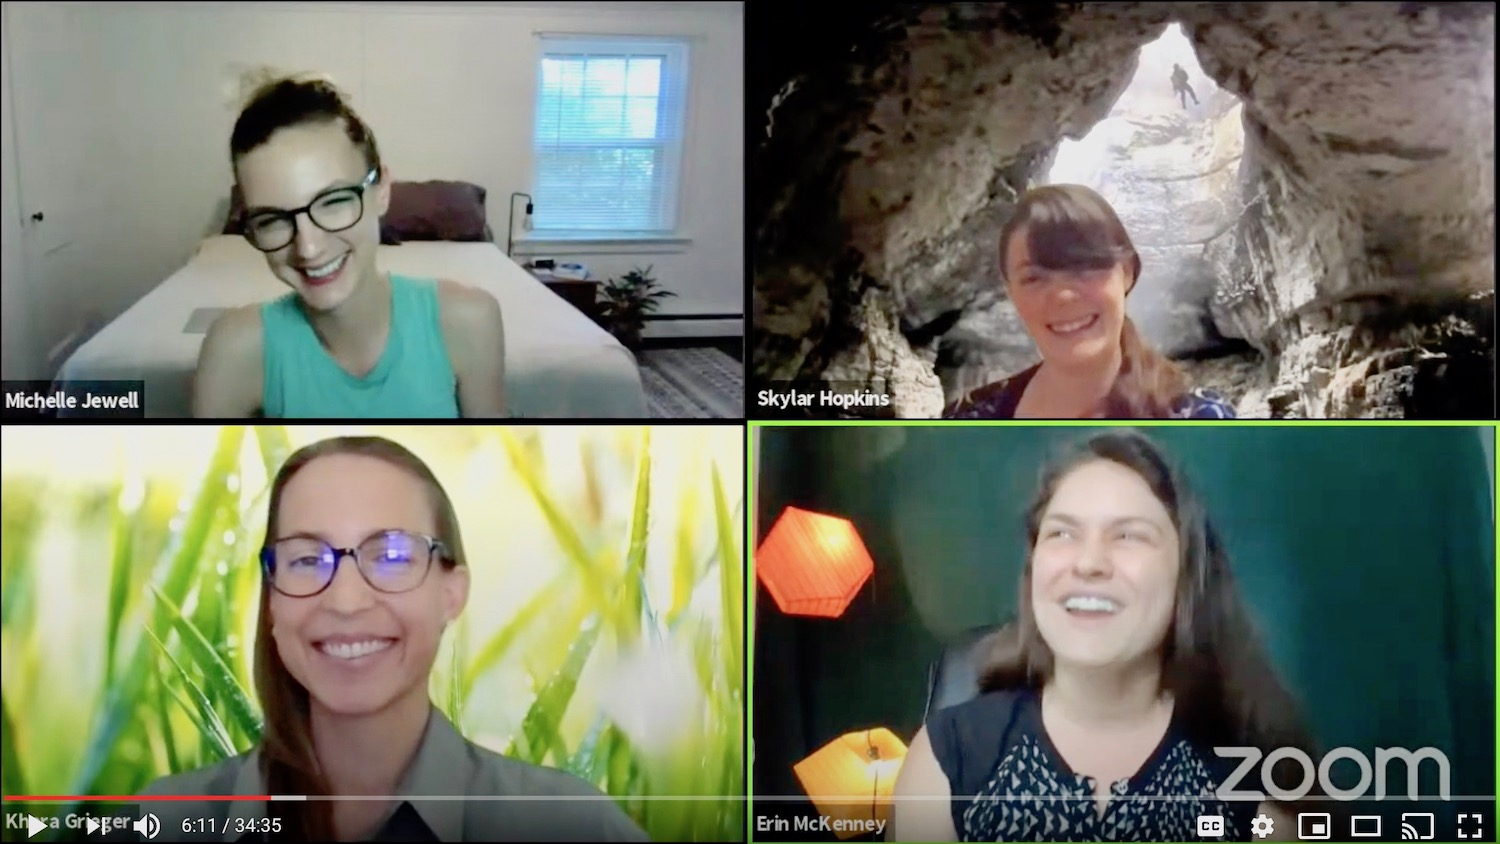 Meet the 2020 faculty, Khara Grieger, Michelle Jewell, Erin McKenny, Skylar Hopkins via Zoom